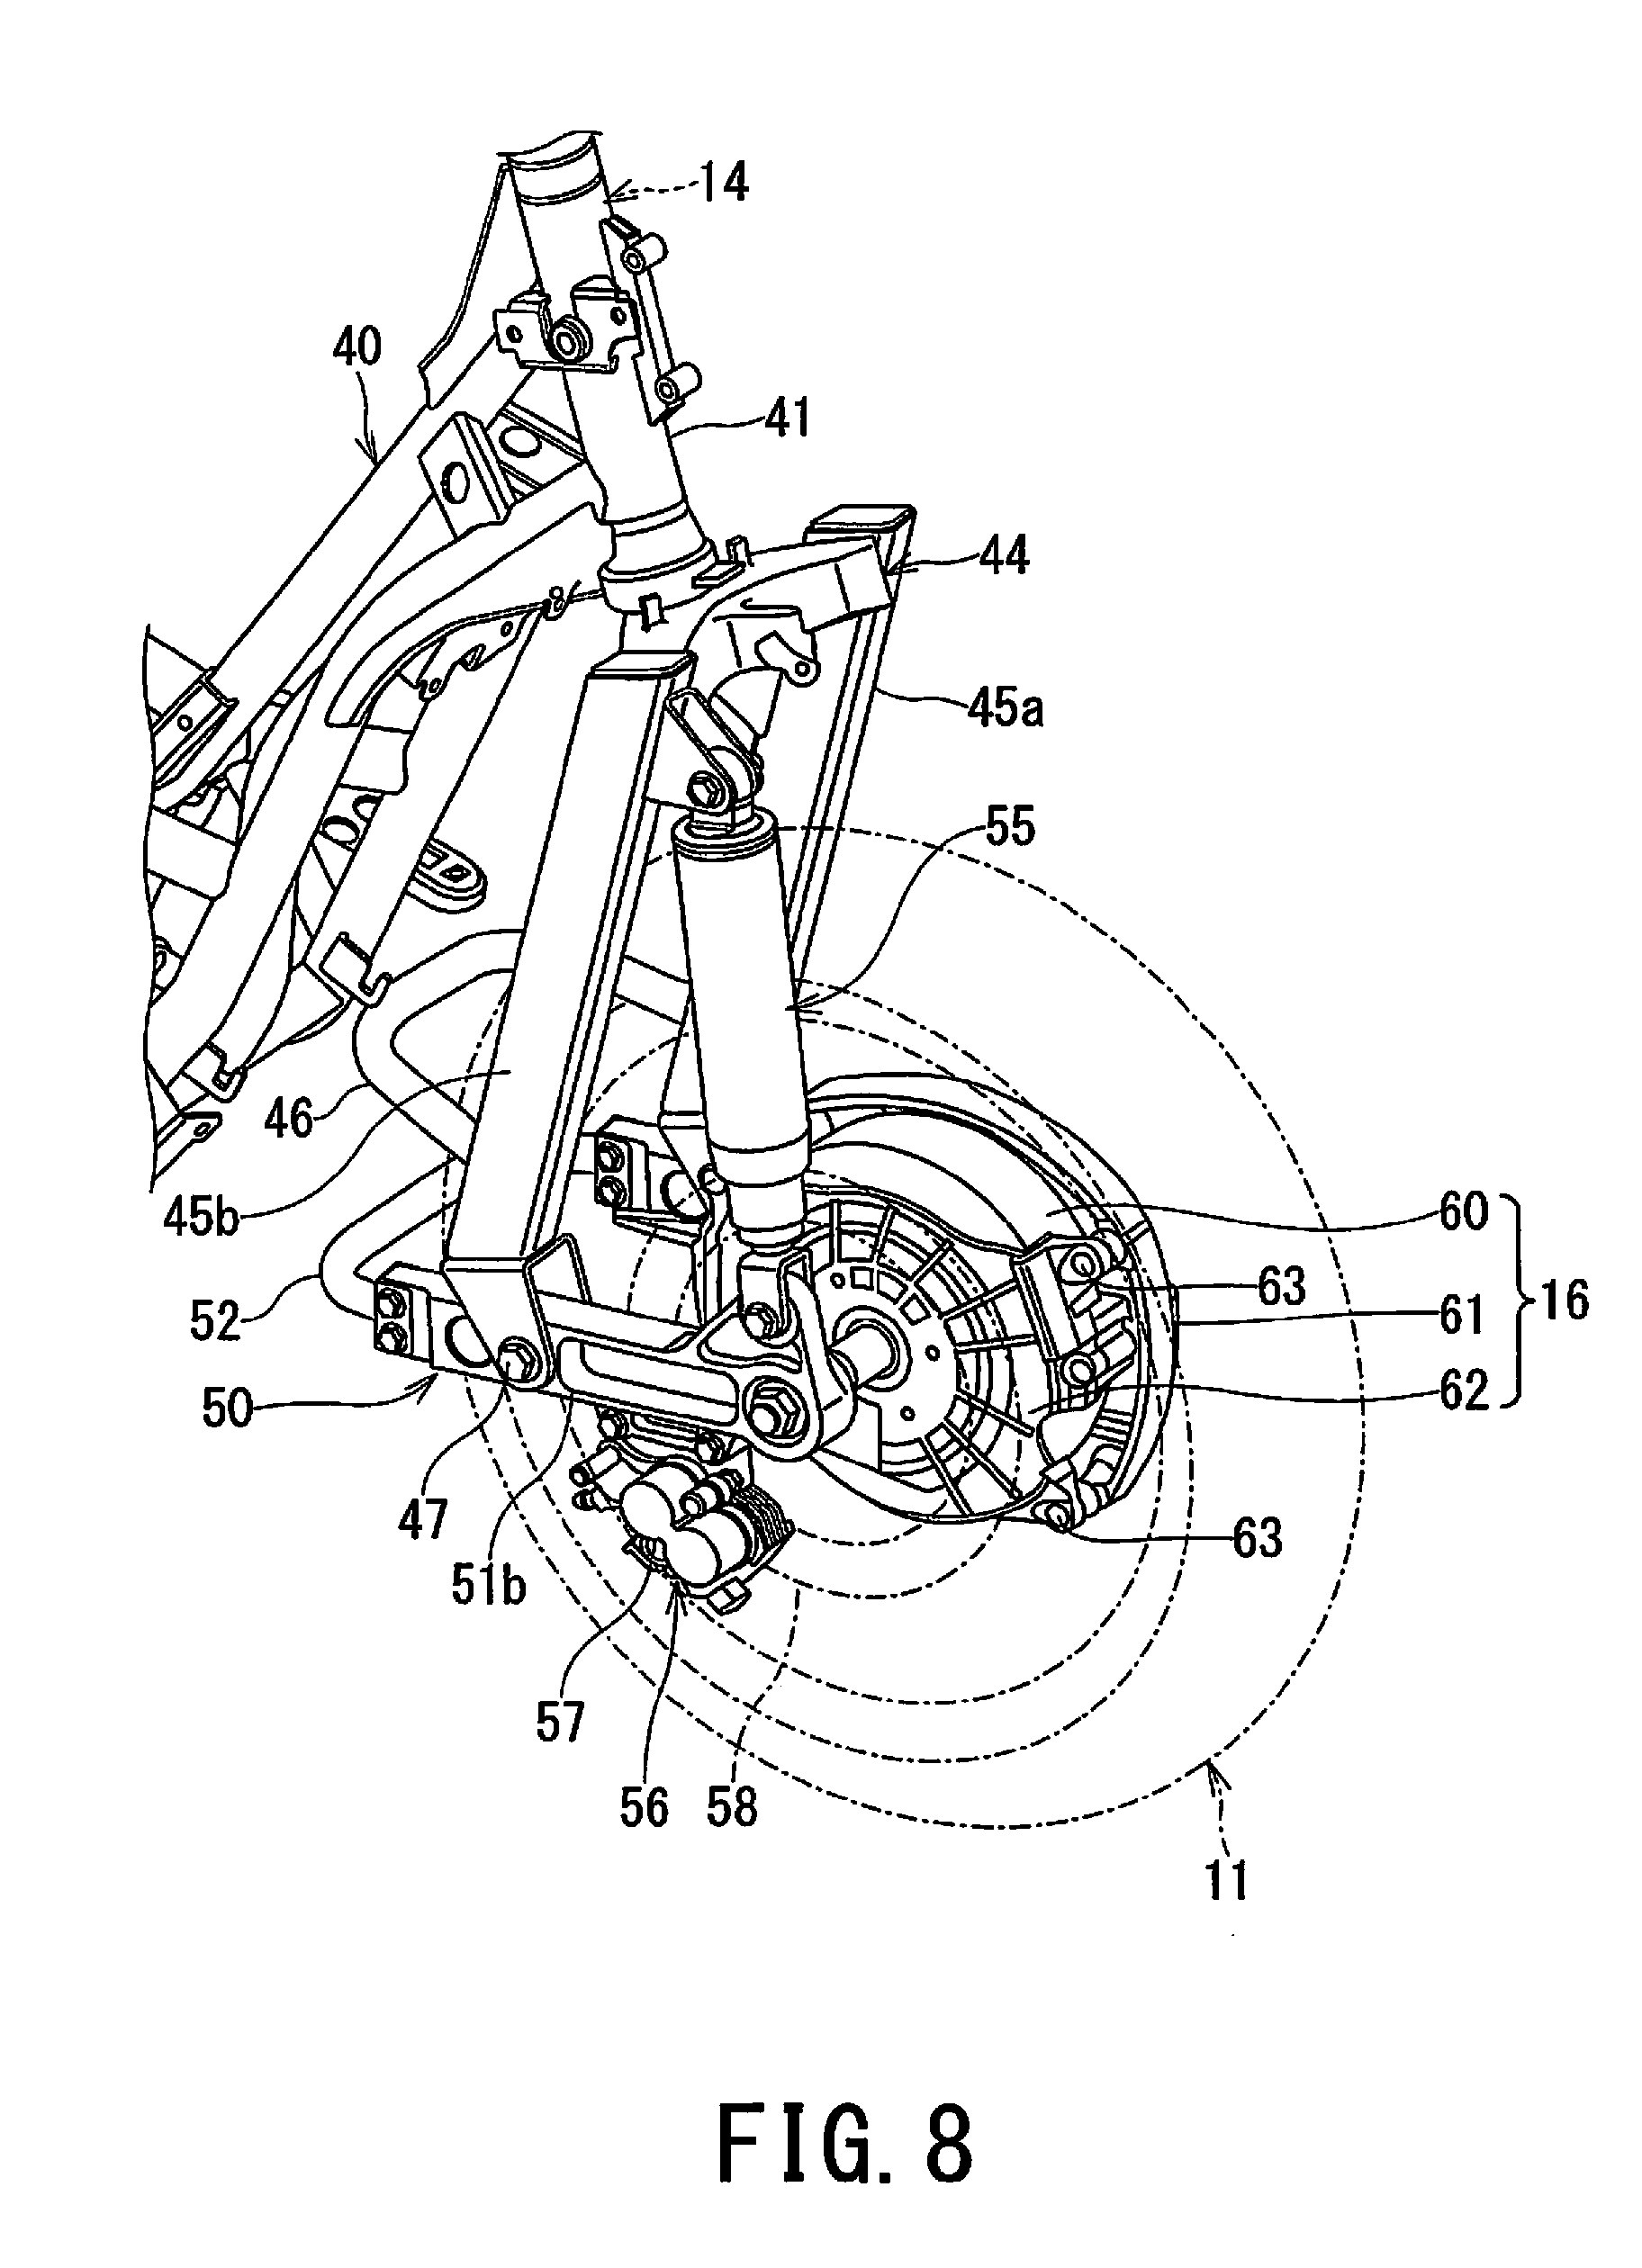 Suzuki Is Working On A Two Wheel Drive Burgman Scooter